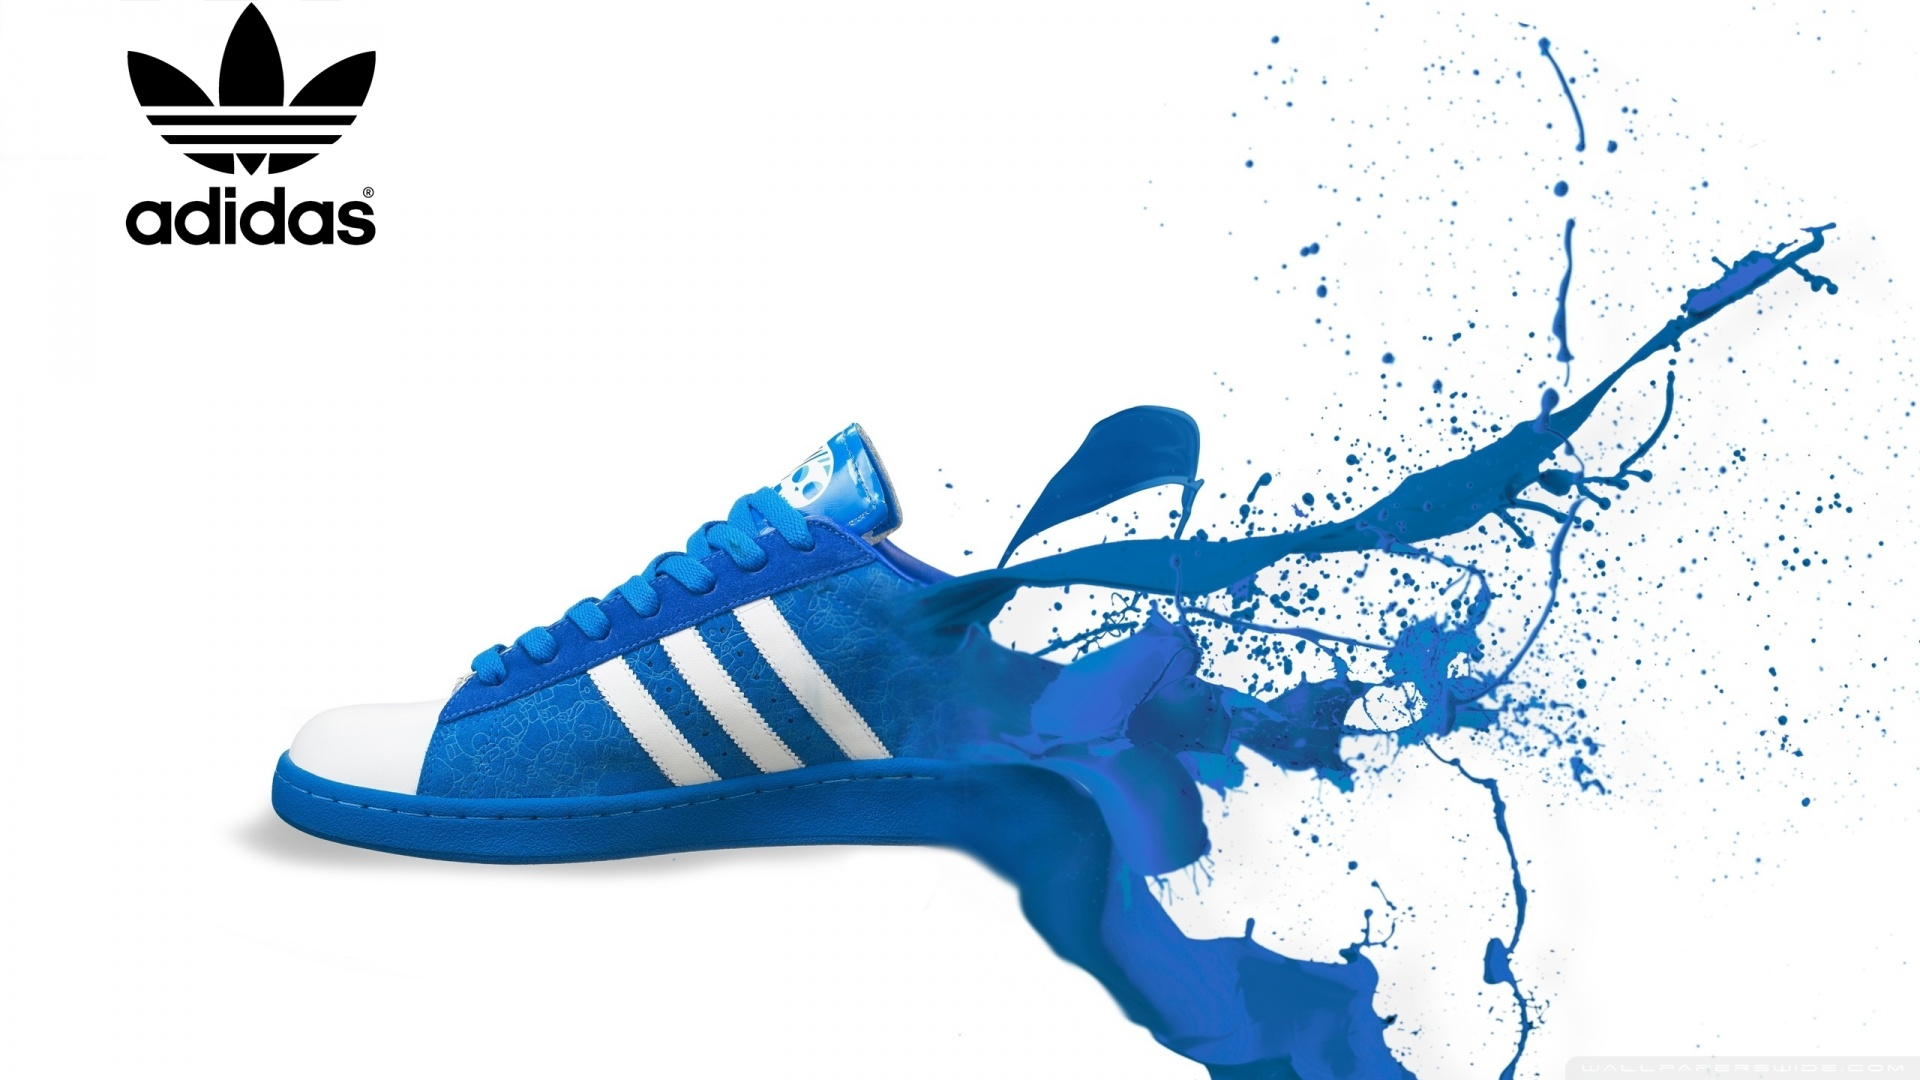 Adidas Sneakers Wallpaper